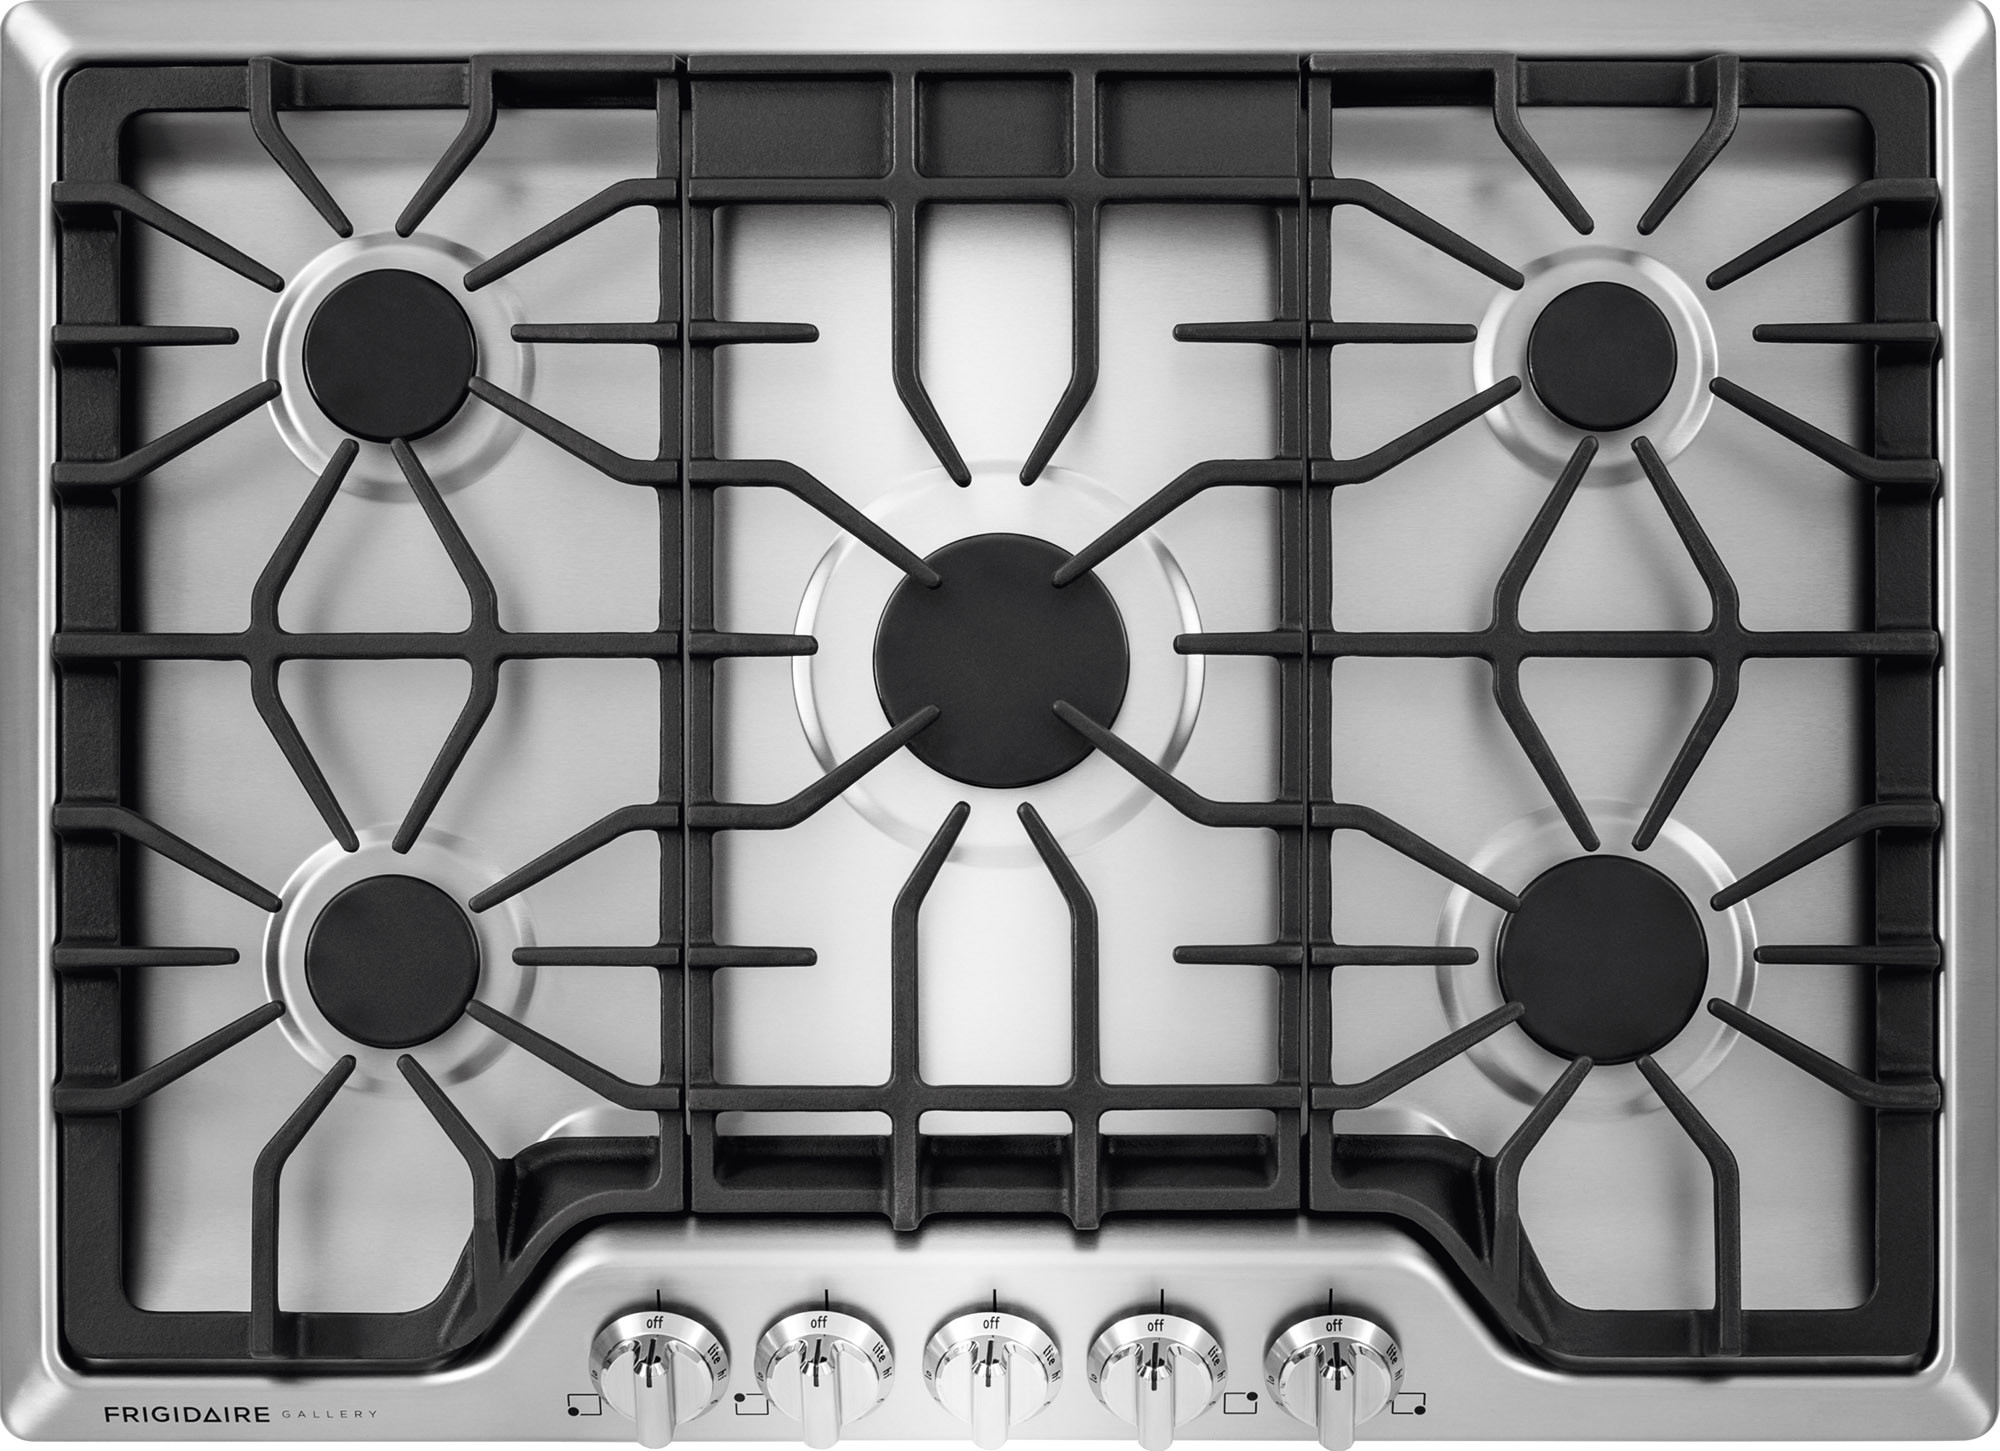 Frigidaire Fggc3047qs 30 Inch Gas Cooktop With 5 Sealed